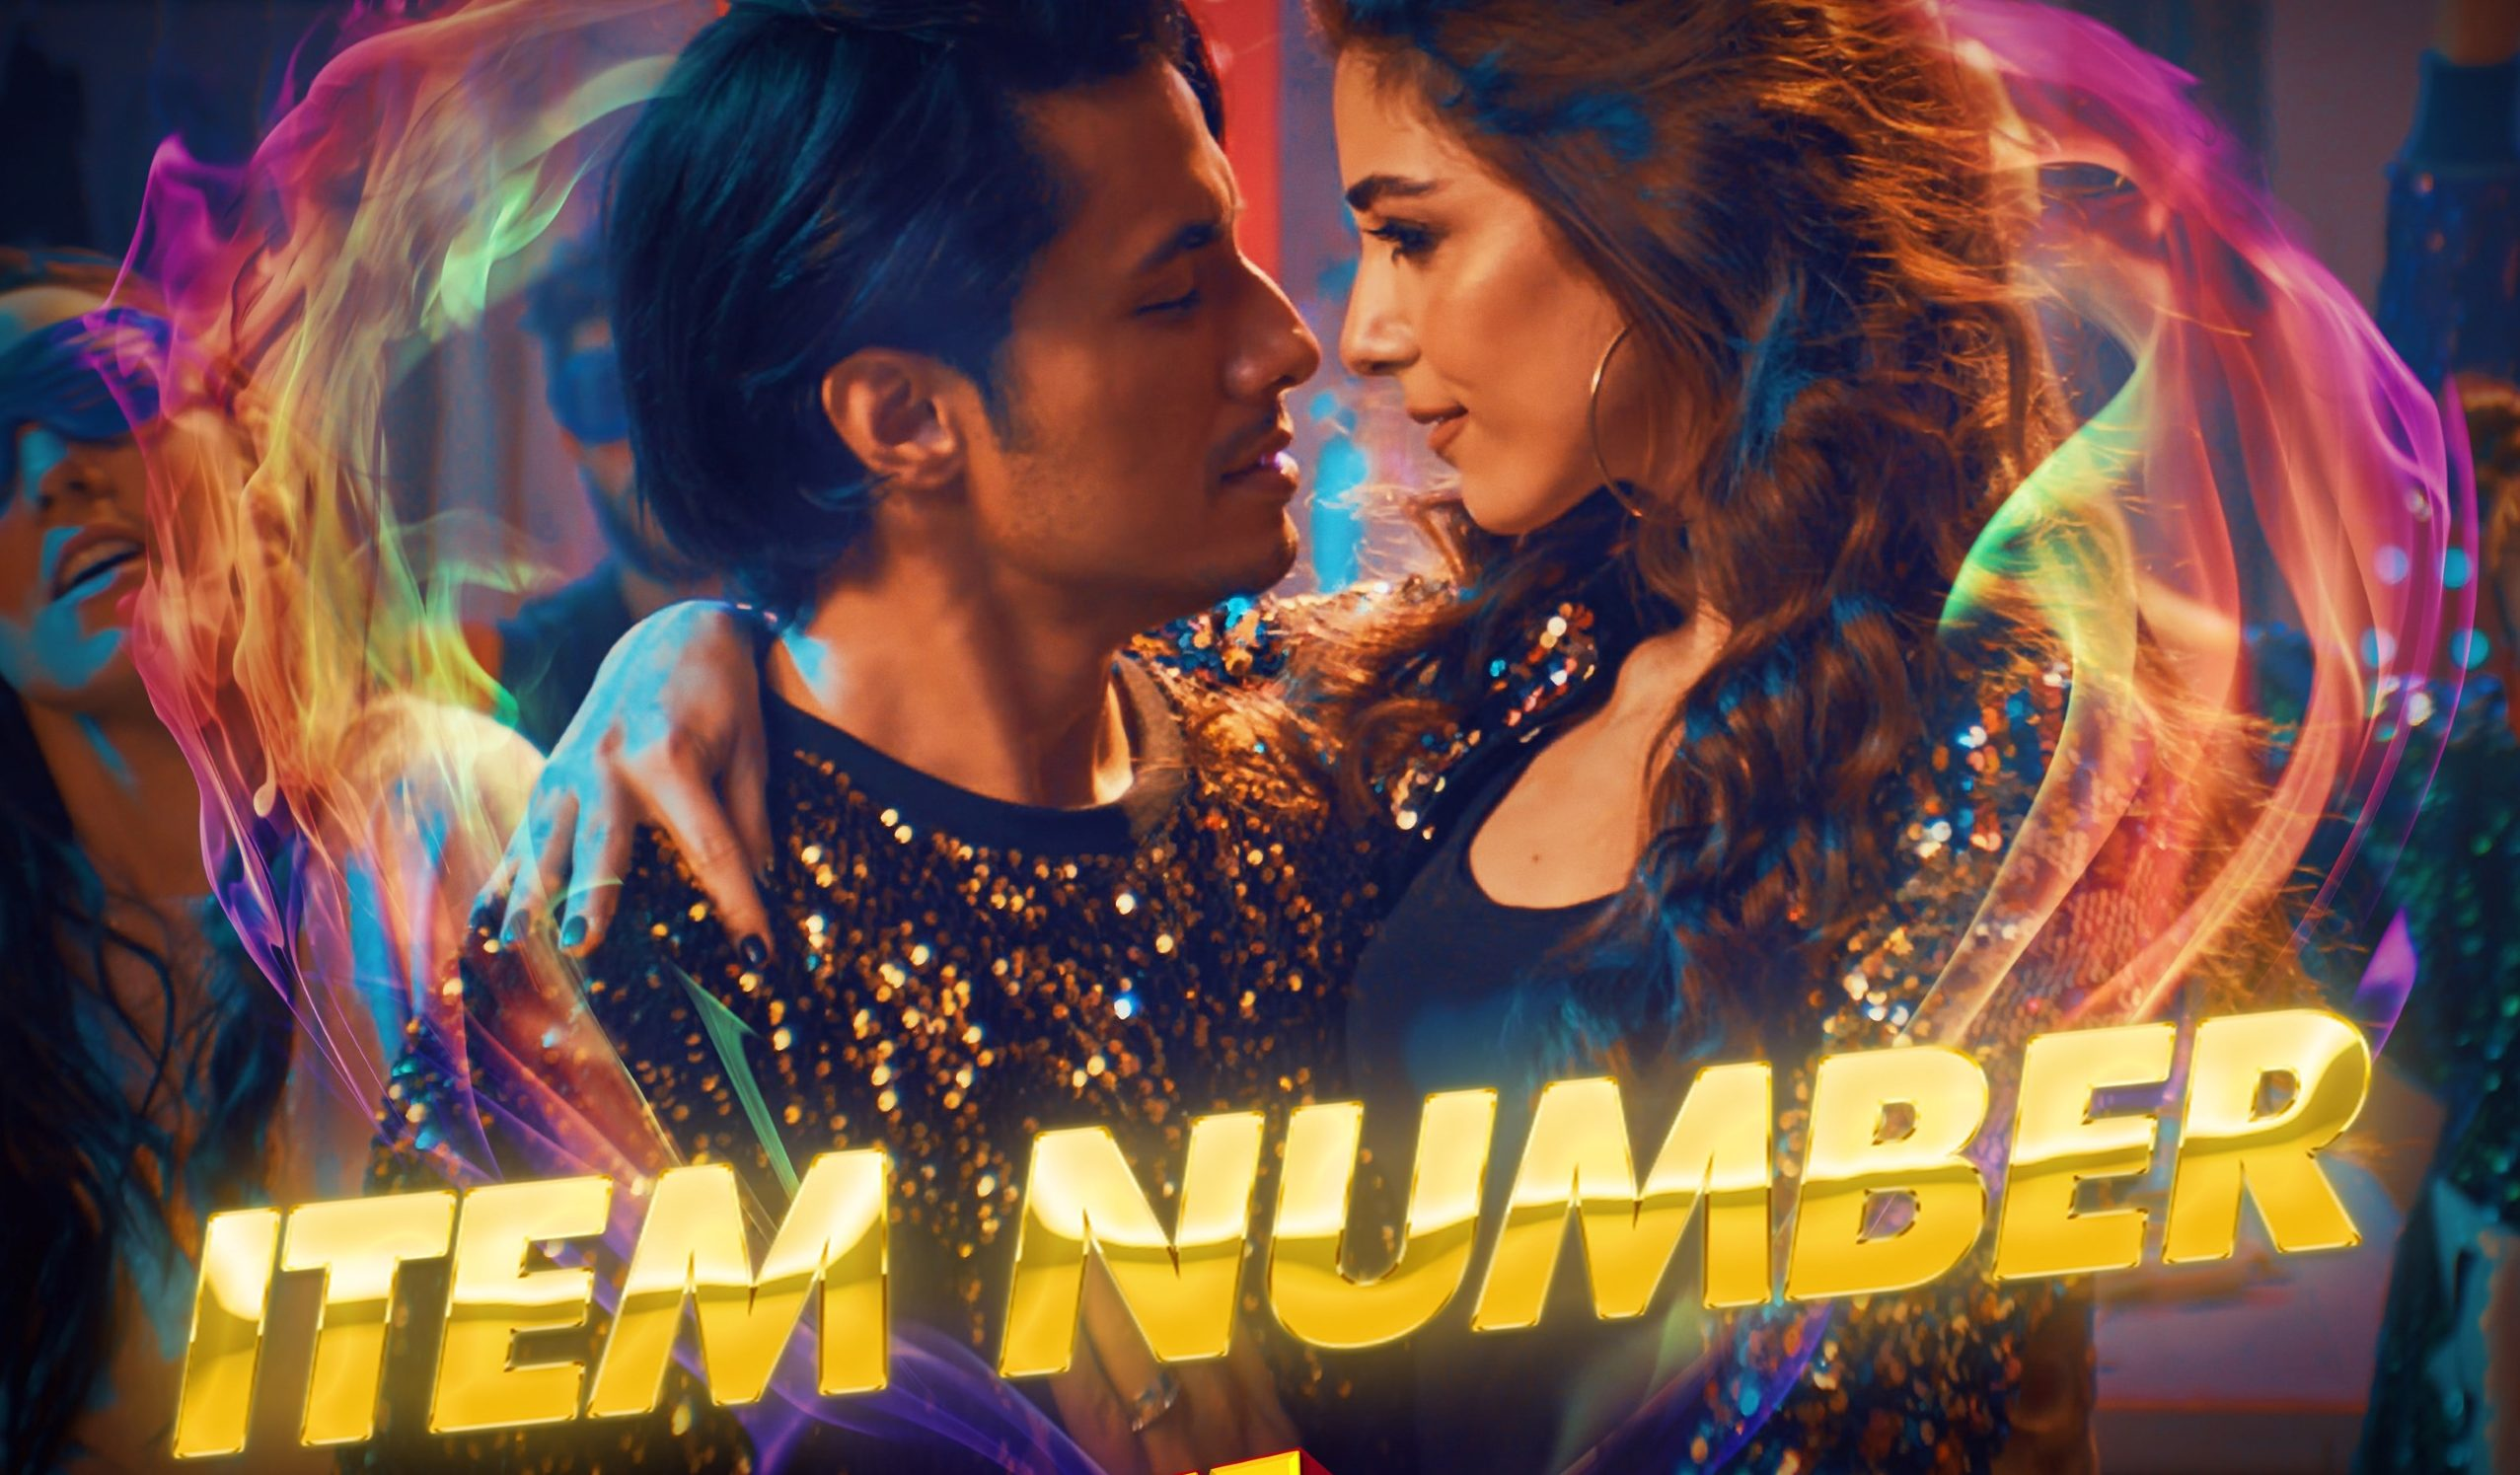 Item Number' Teefa in Trouble's Much Anticipated First Music